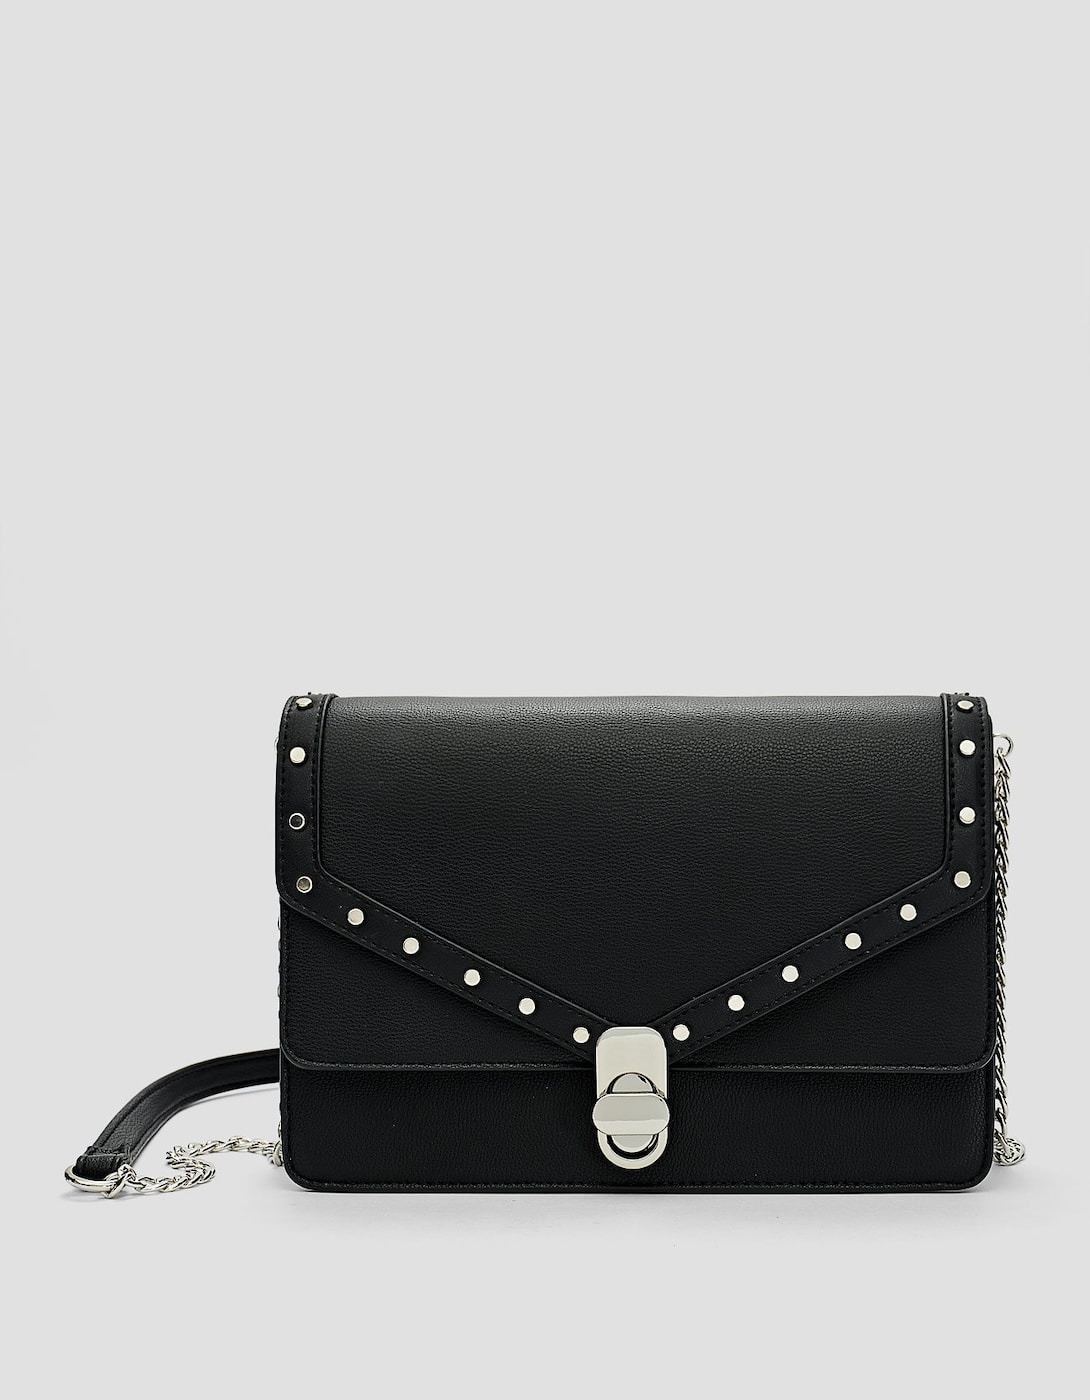 Backpacks Crossbody With Clasp And Chain Bag Strap Bags A6RwqS